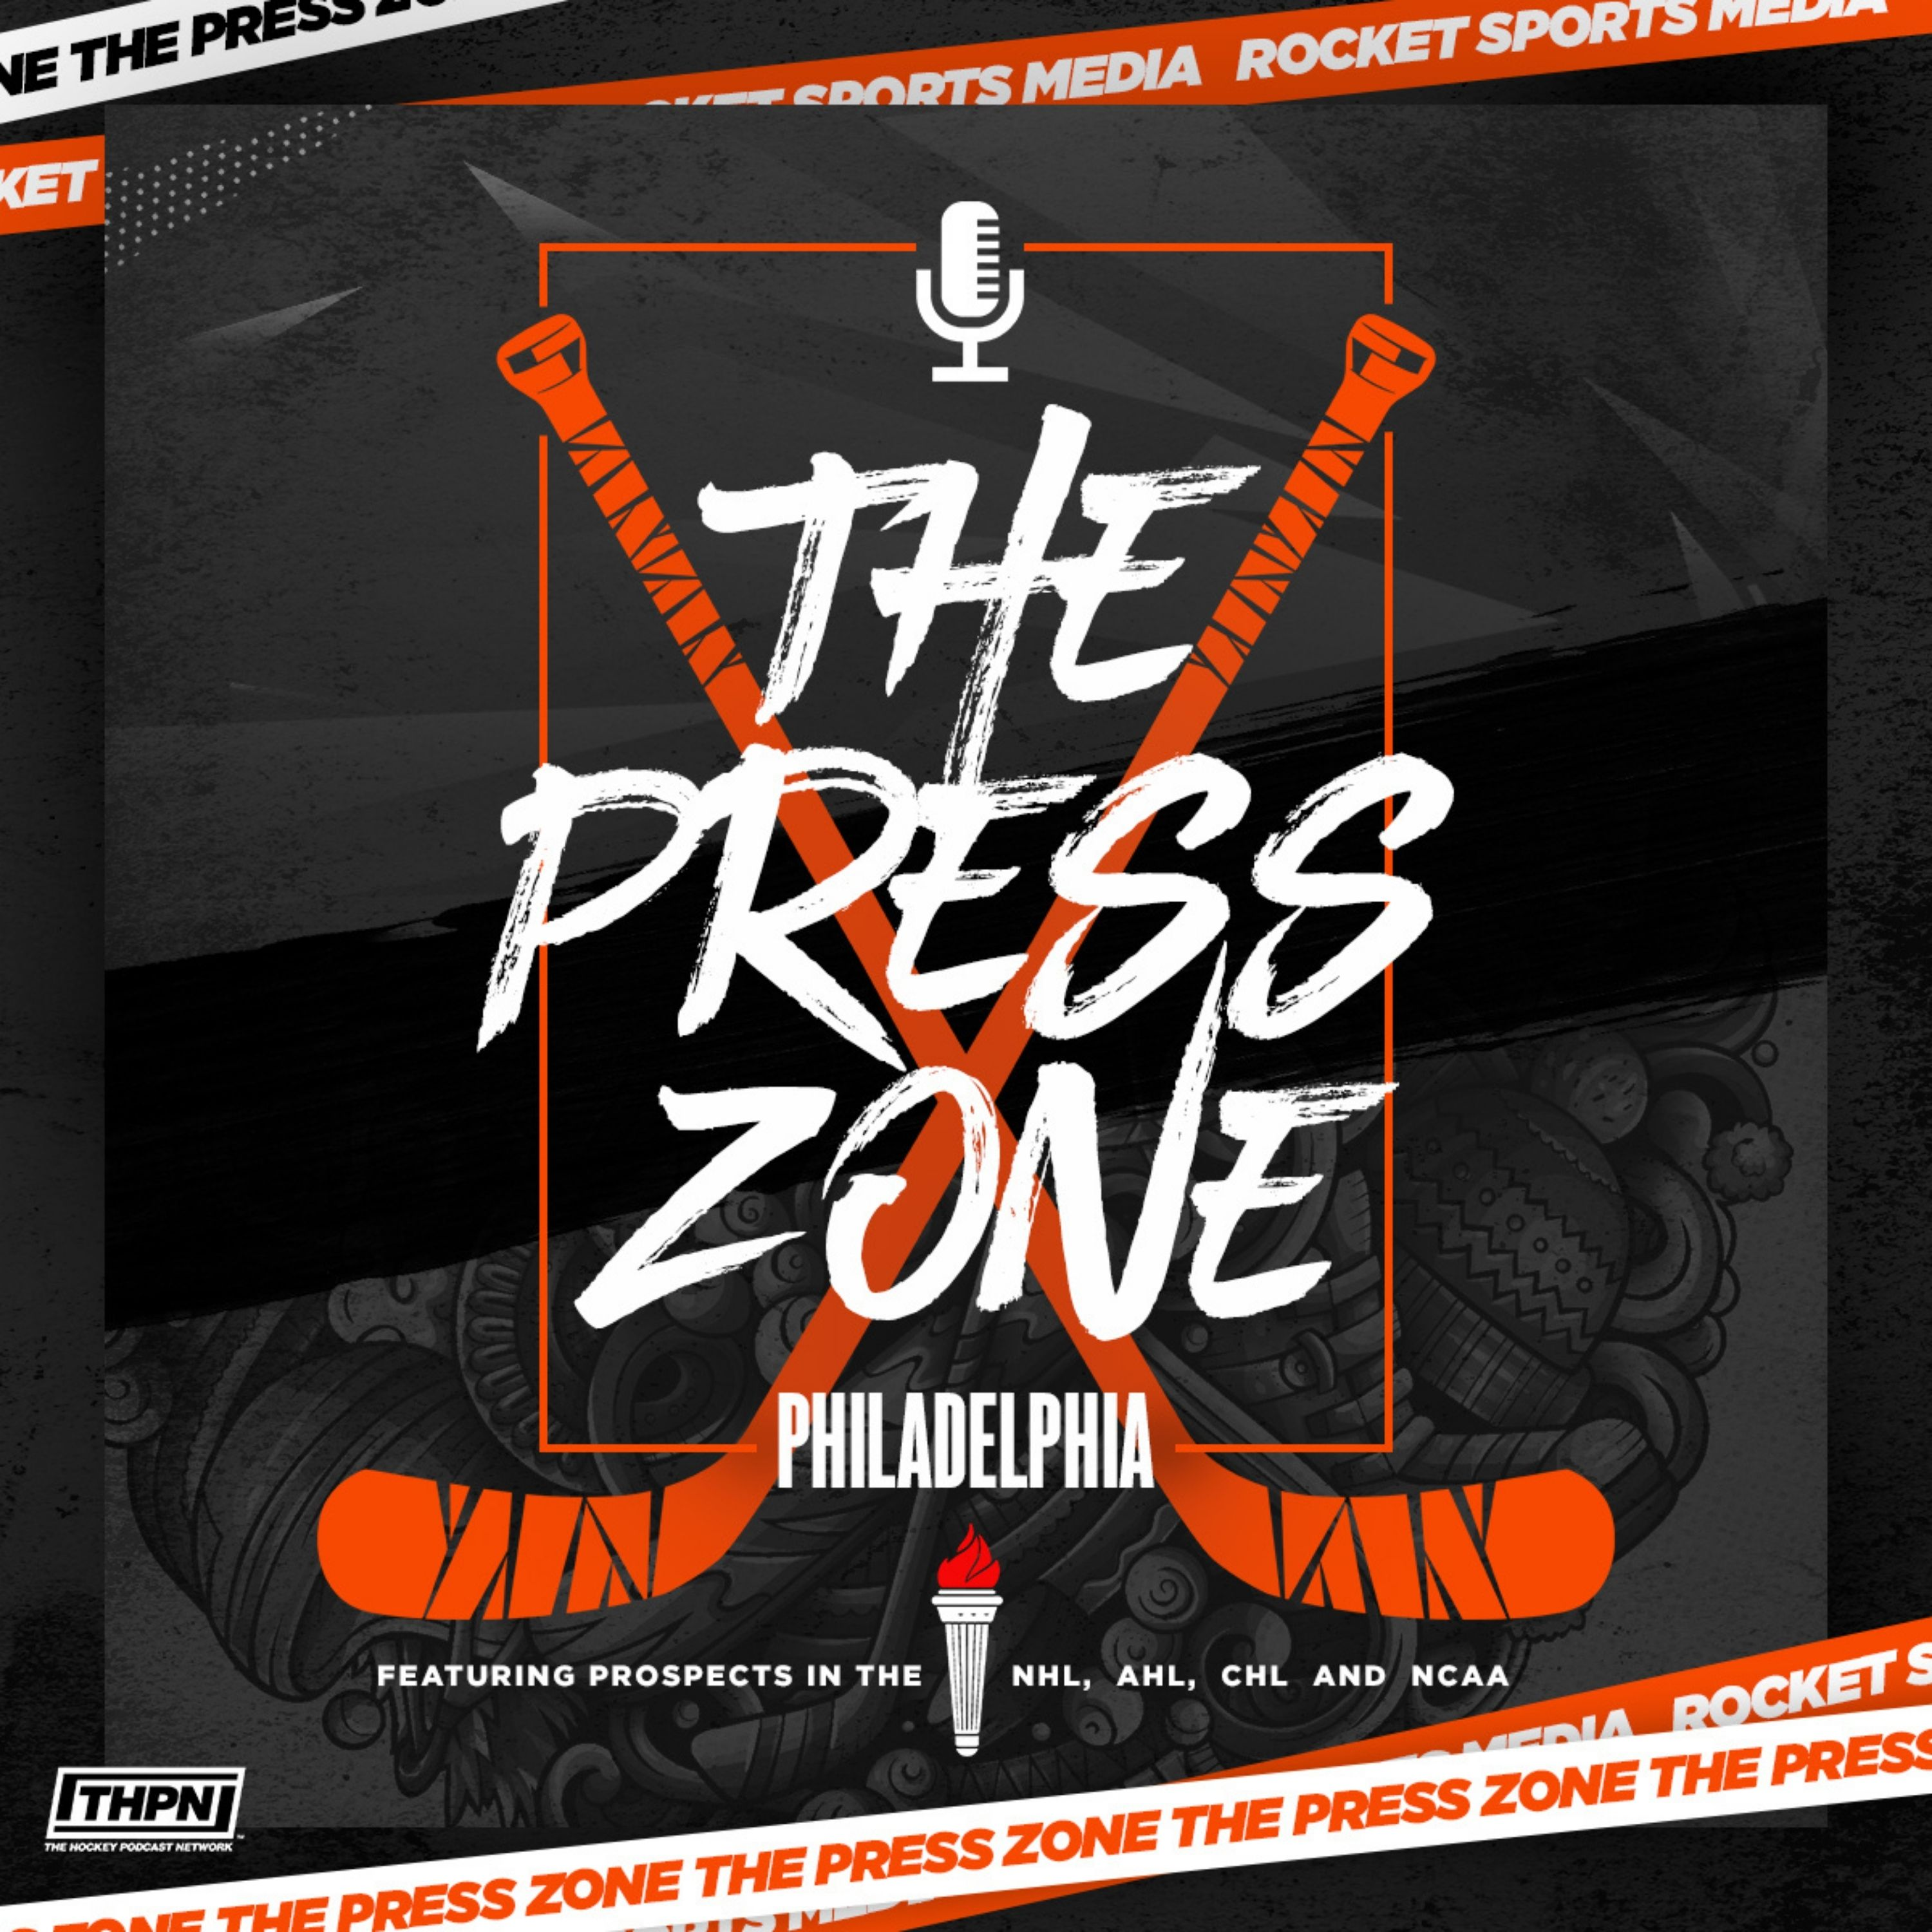 Artwork for podcast The Press Zone